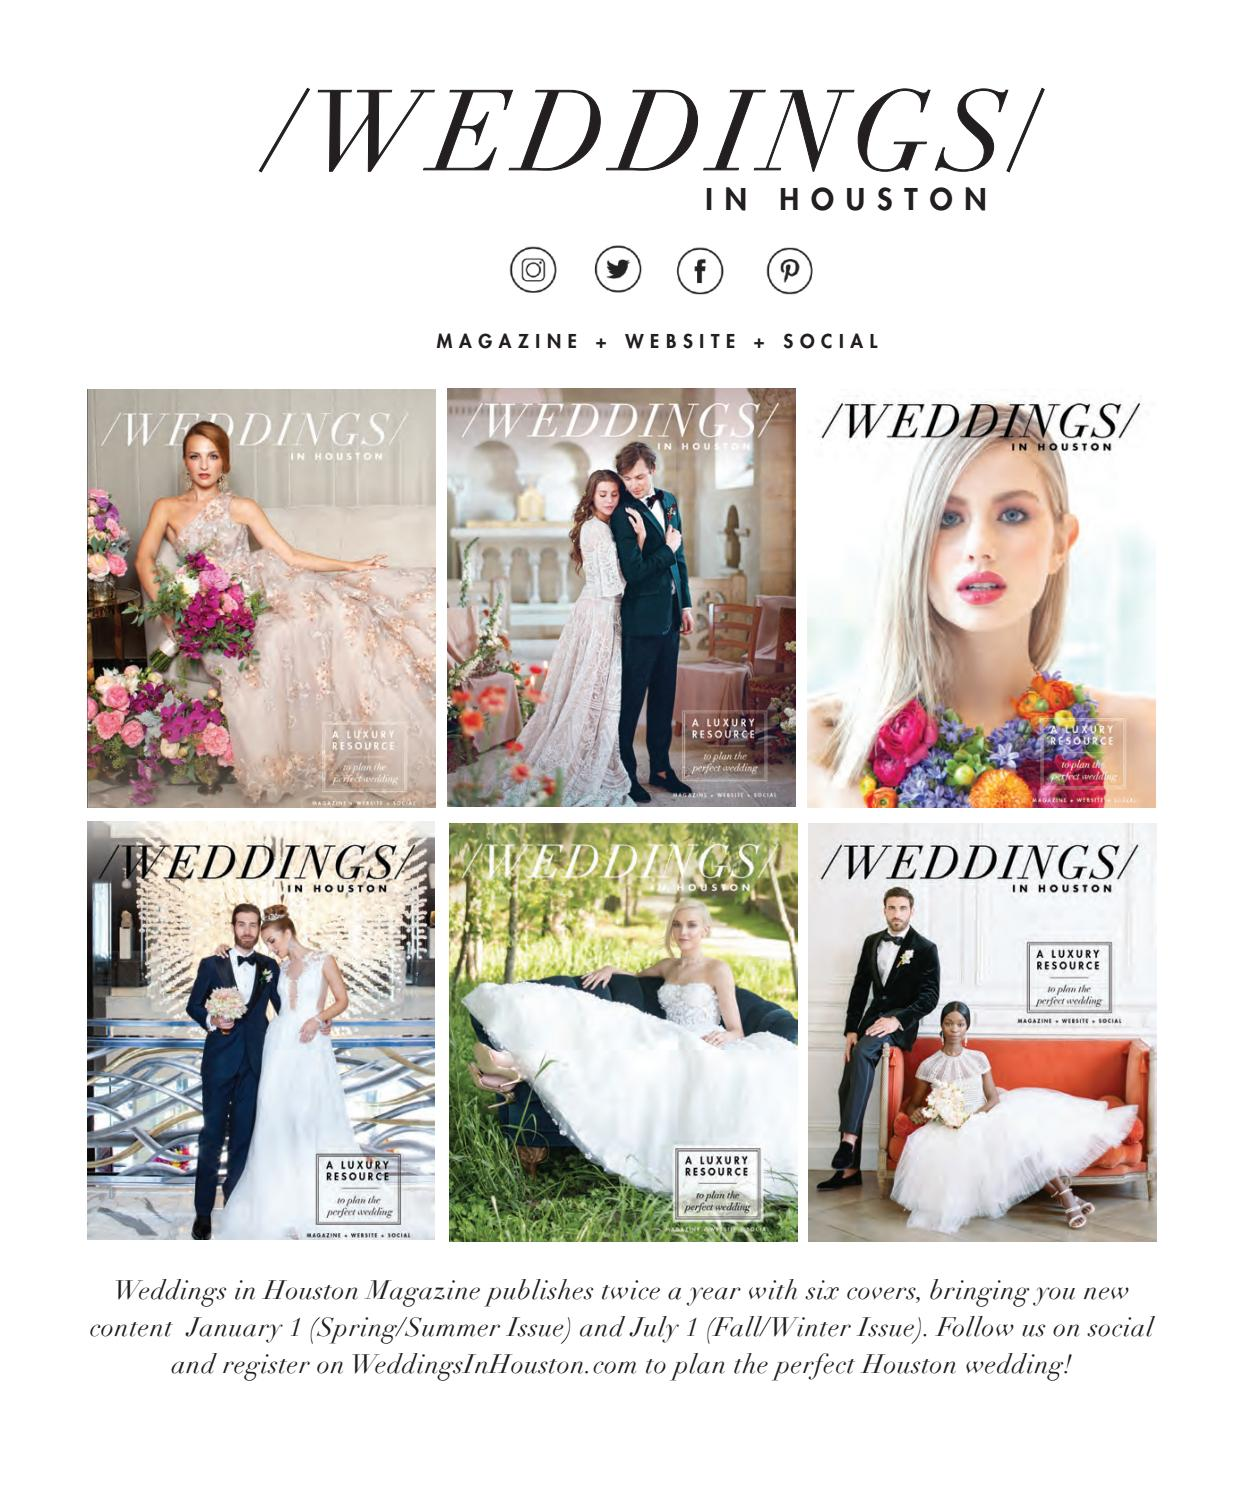 79cd60c98bf Weddings in Houston Magazine - Spring-Summer 2019 Issue by Weddings in  Houston - issuu